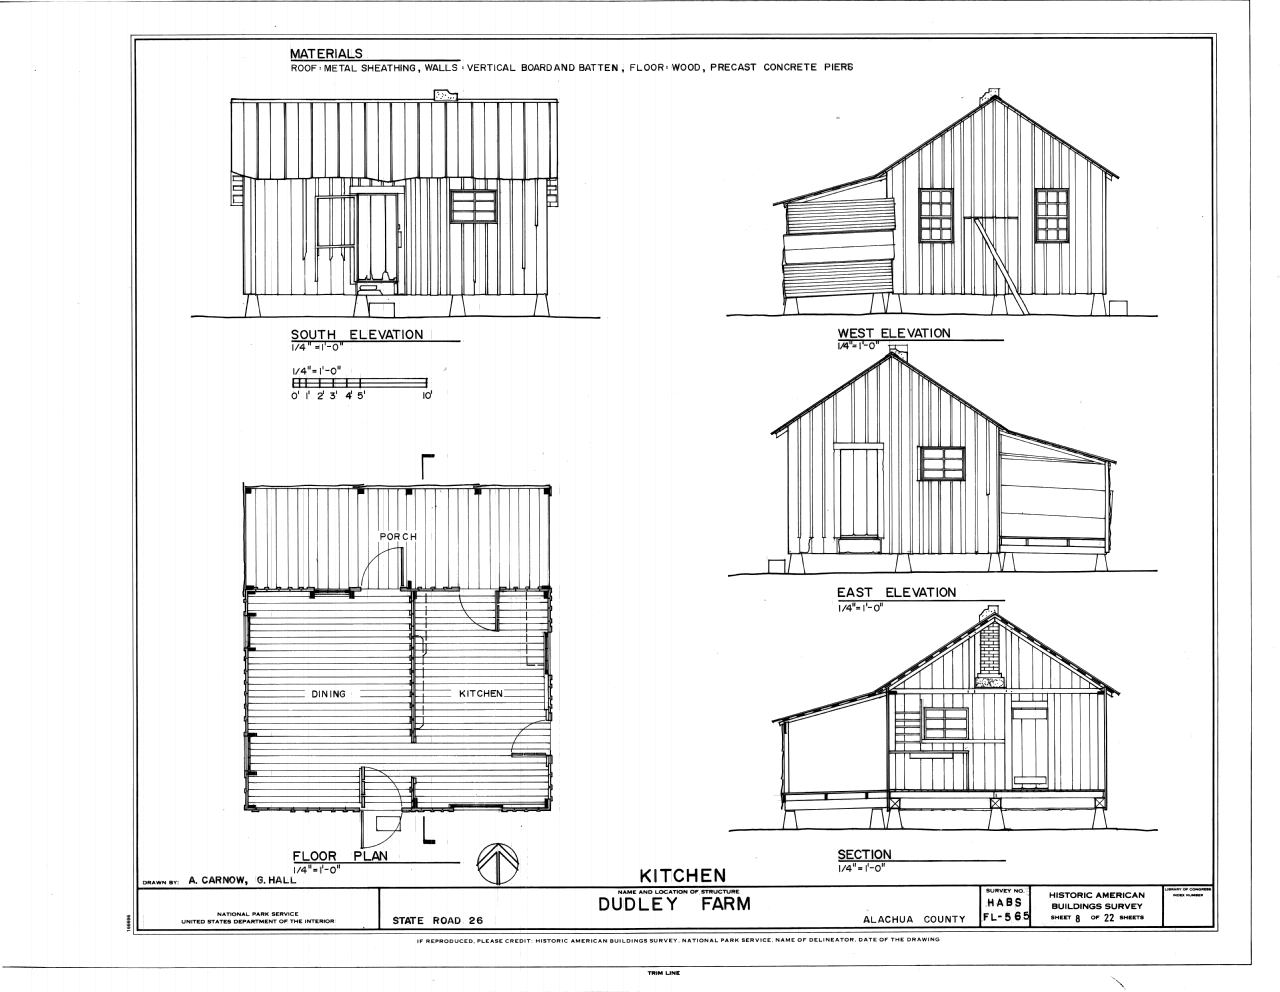 Plan En Elevation : File kitchen elevations floor plan and section dudley